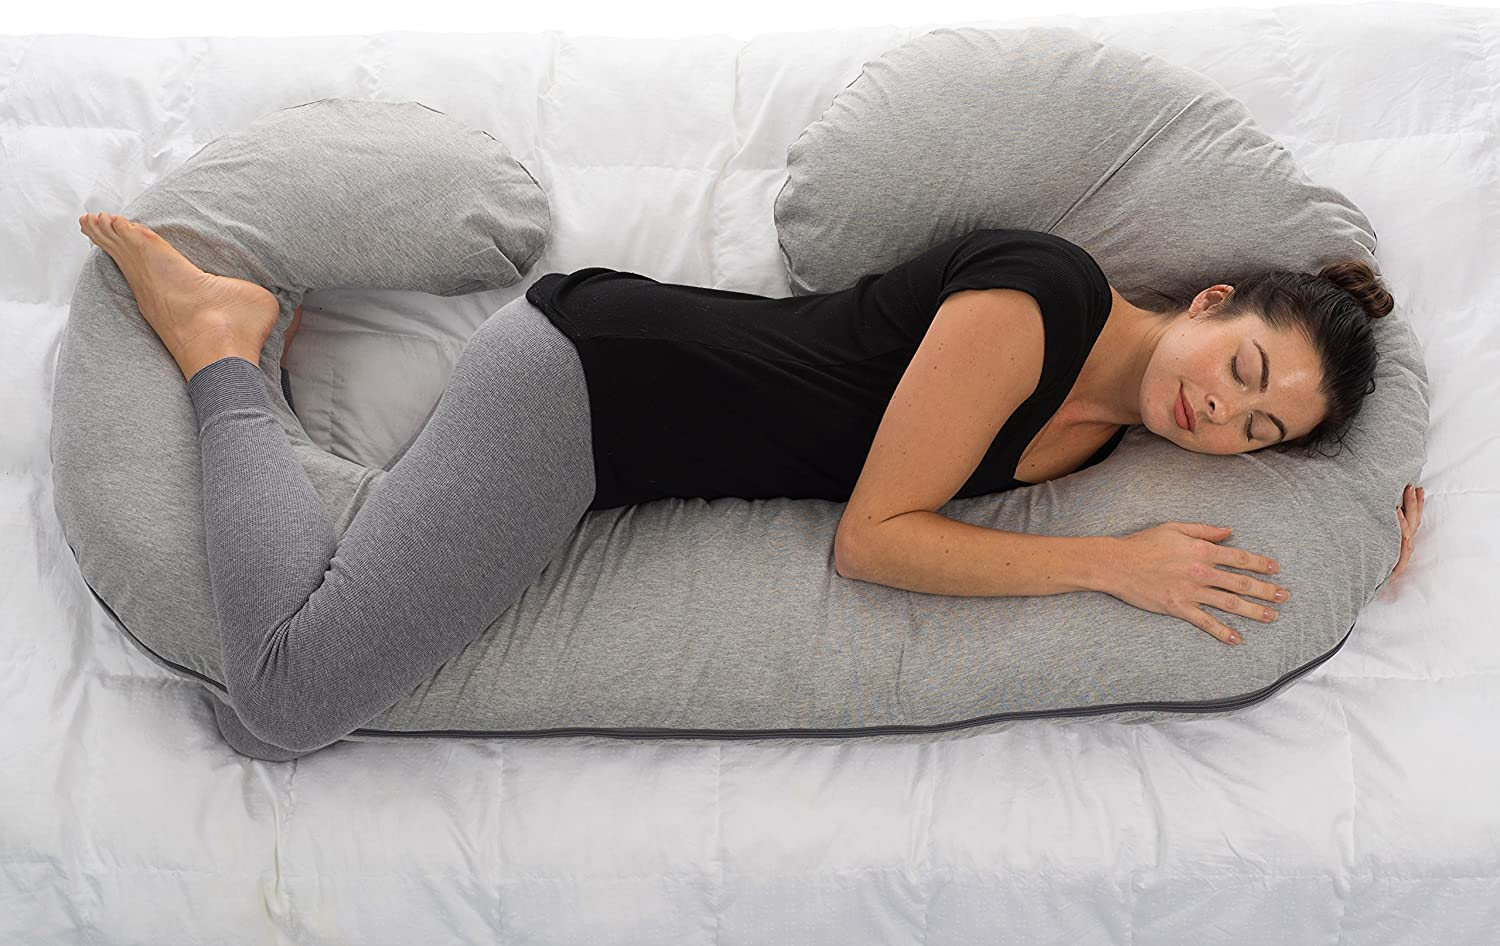 ComfySure Pregnancy Pillow Case - Replacement White Protective Cover for Full Body Cushions - Machine Washable - Ultra Soft Polyester Microfiber